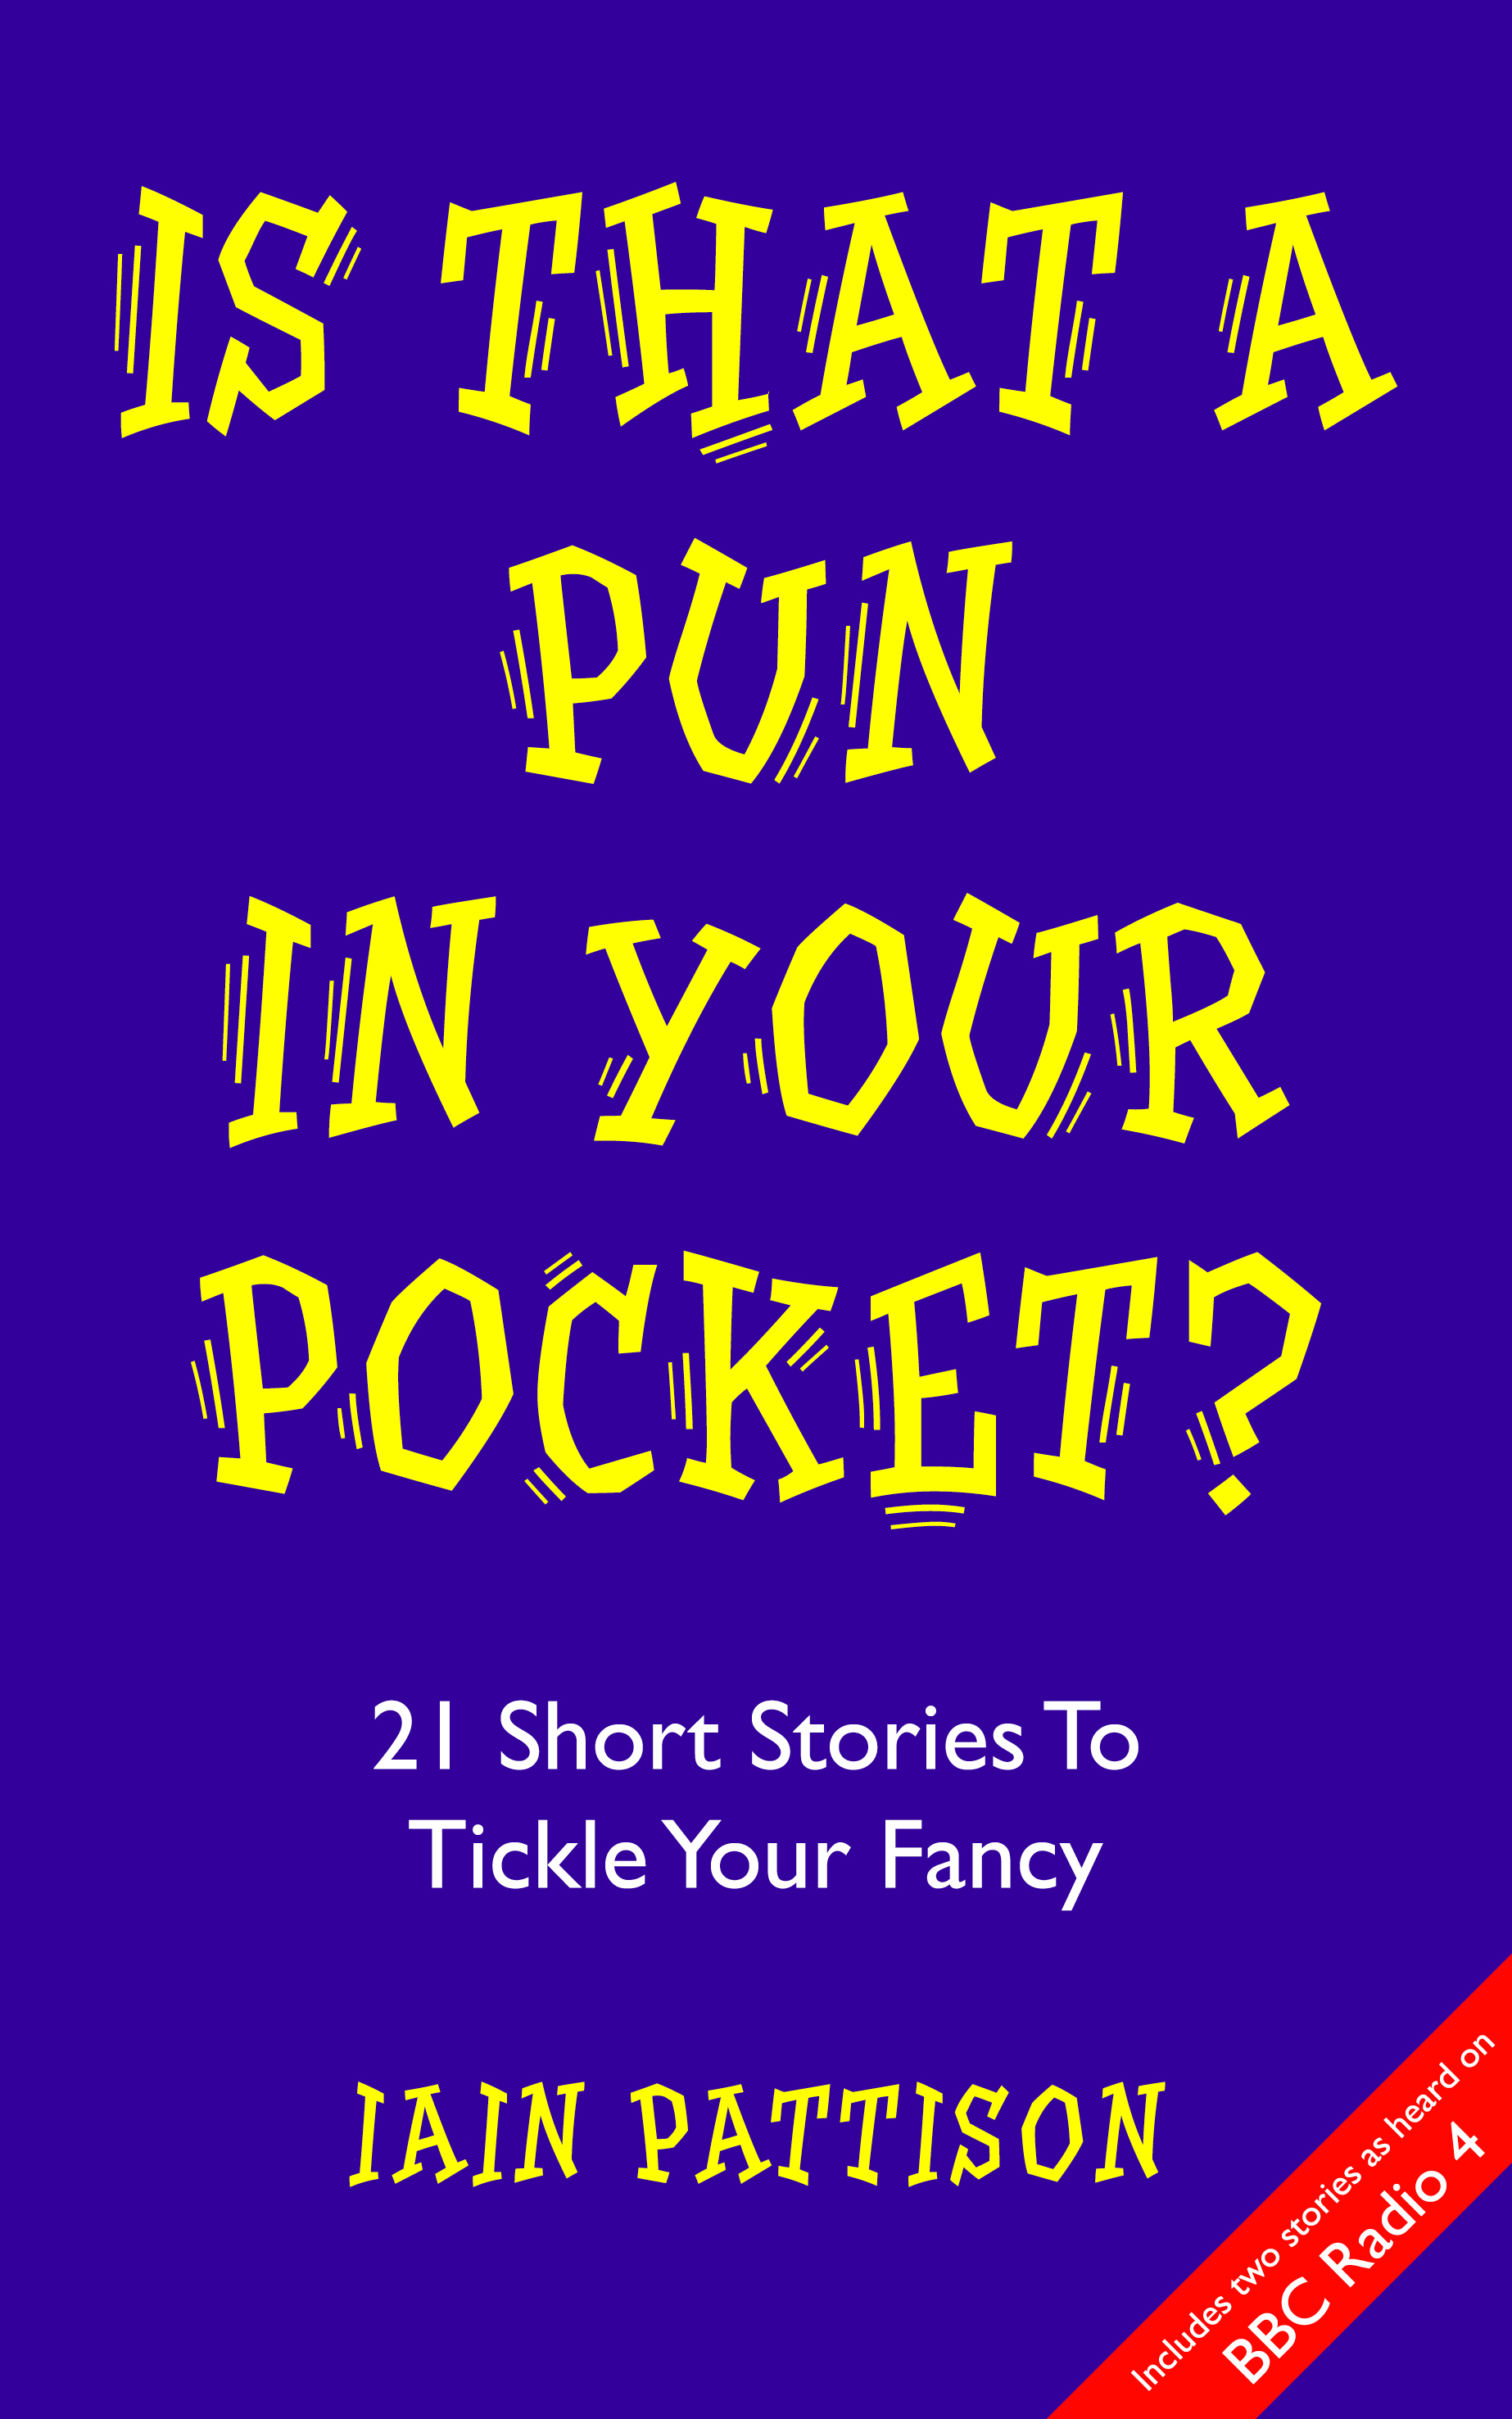 Is That A Pun In Your Pocket?